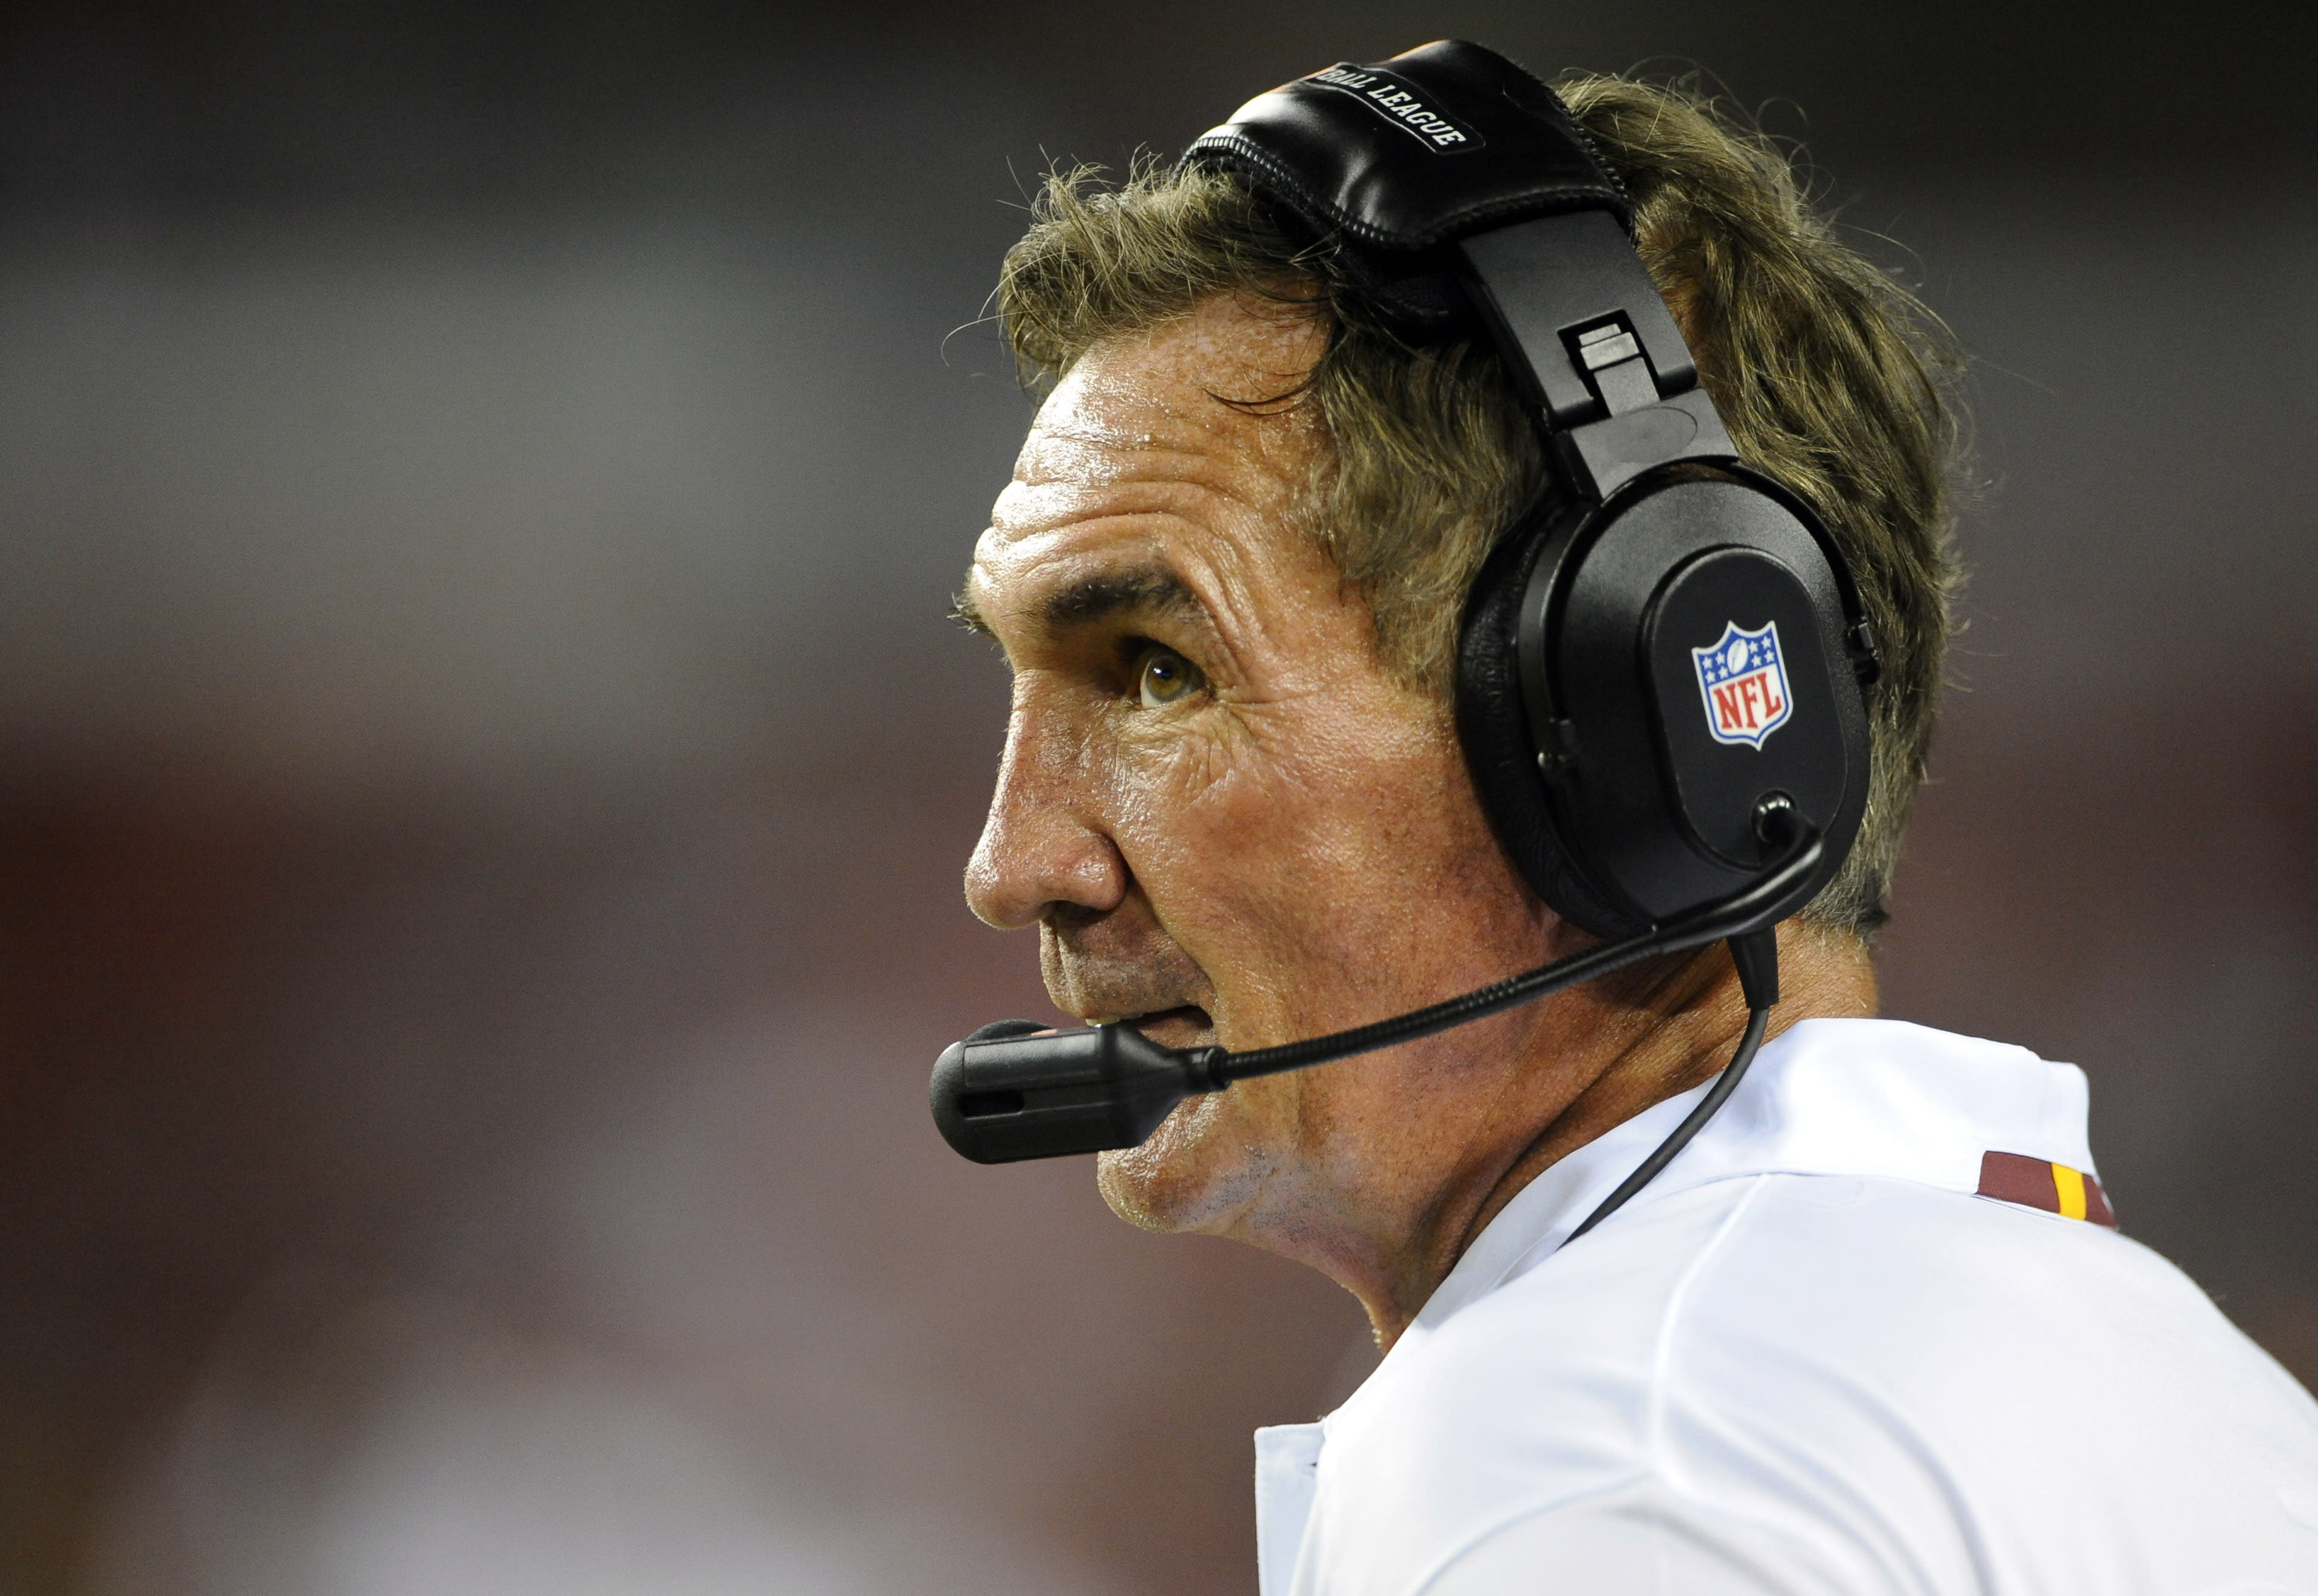 John Elway tried to get Mike Shanahan back to coach Broncos, team CEO refused it